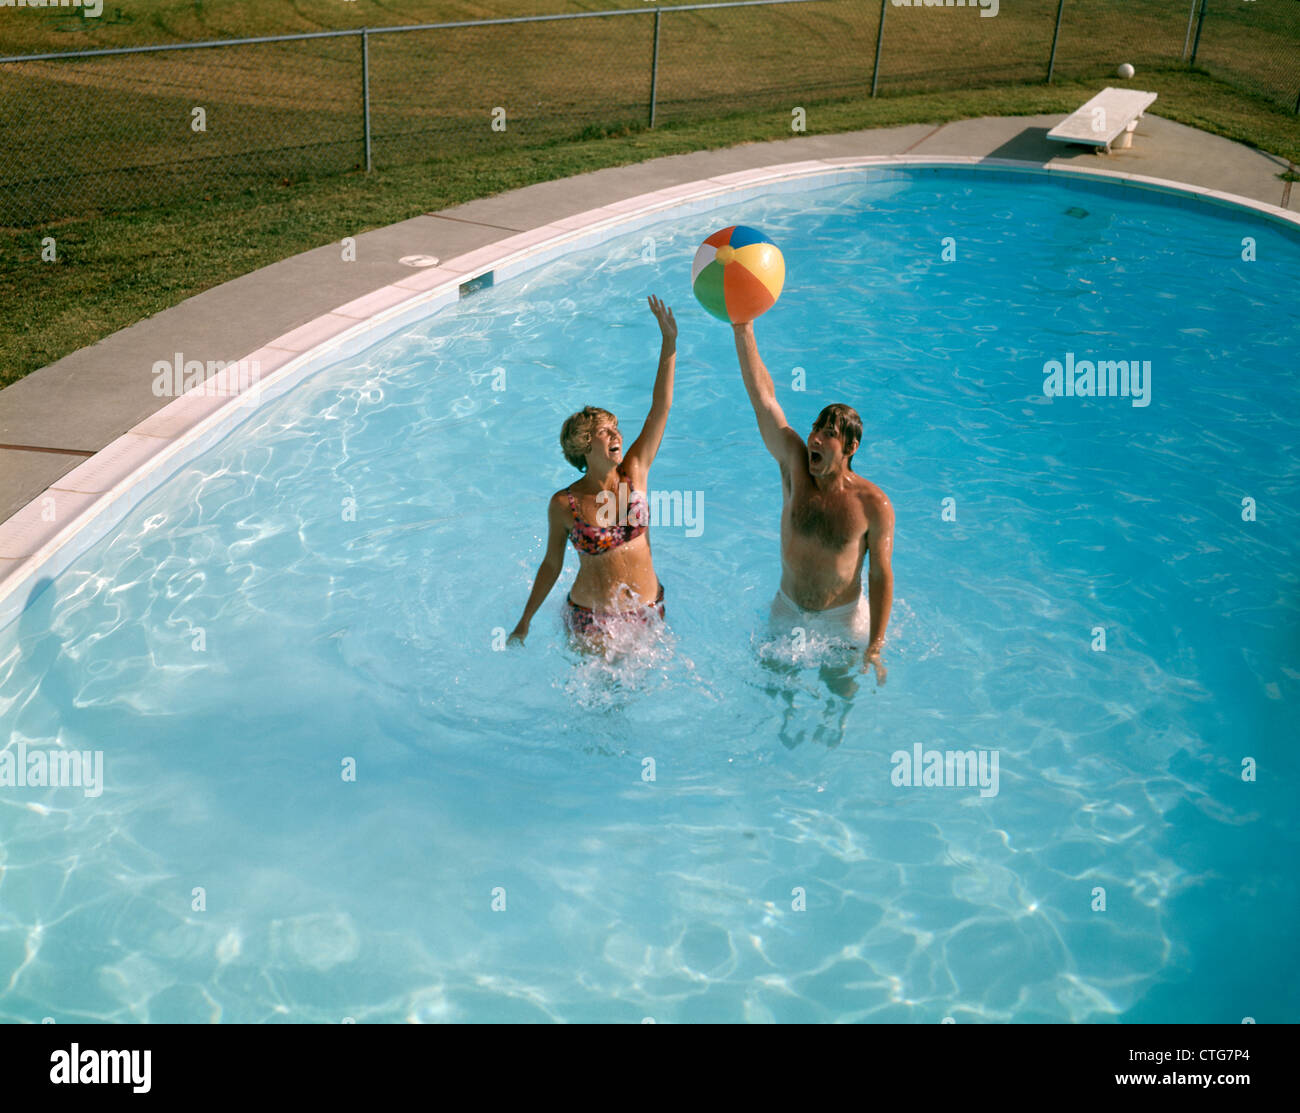 1980 1980s man woman couple jumping up beach ball backyard for Swimming pool photos